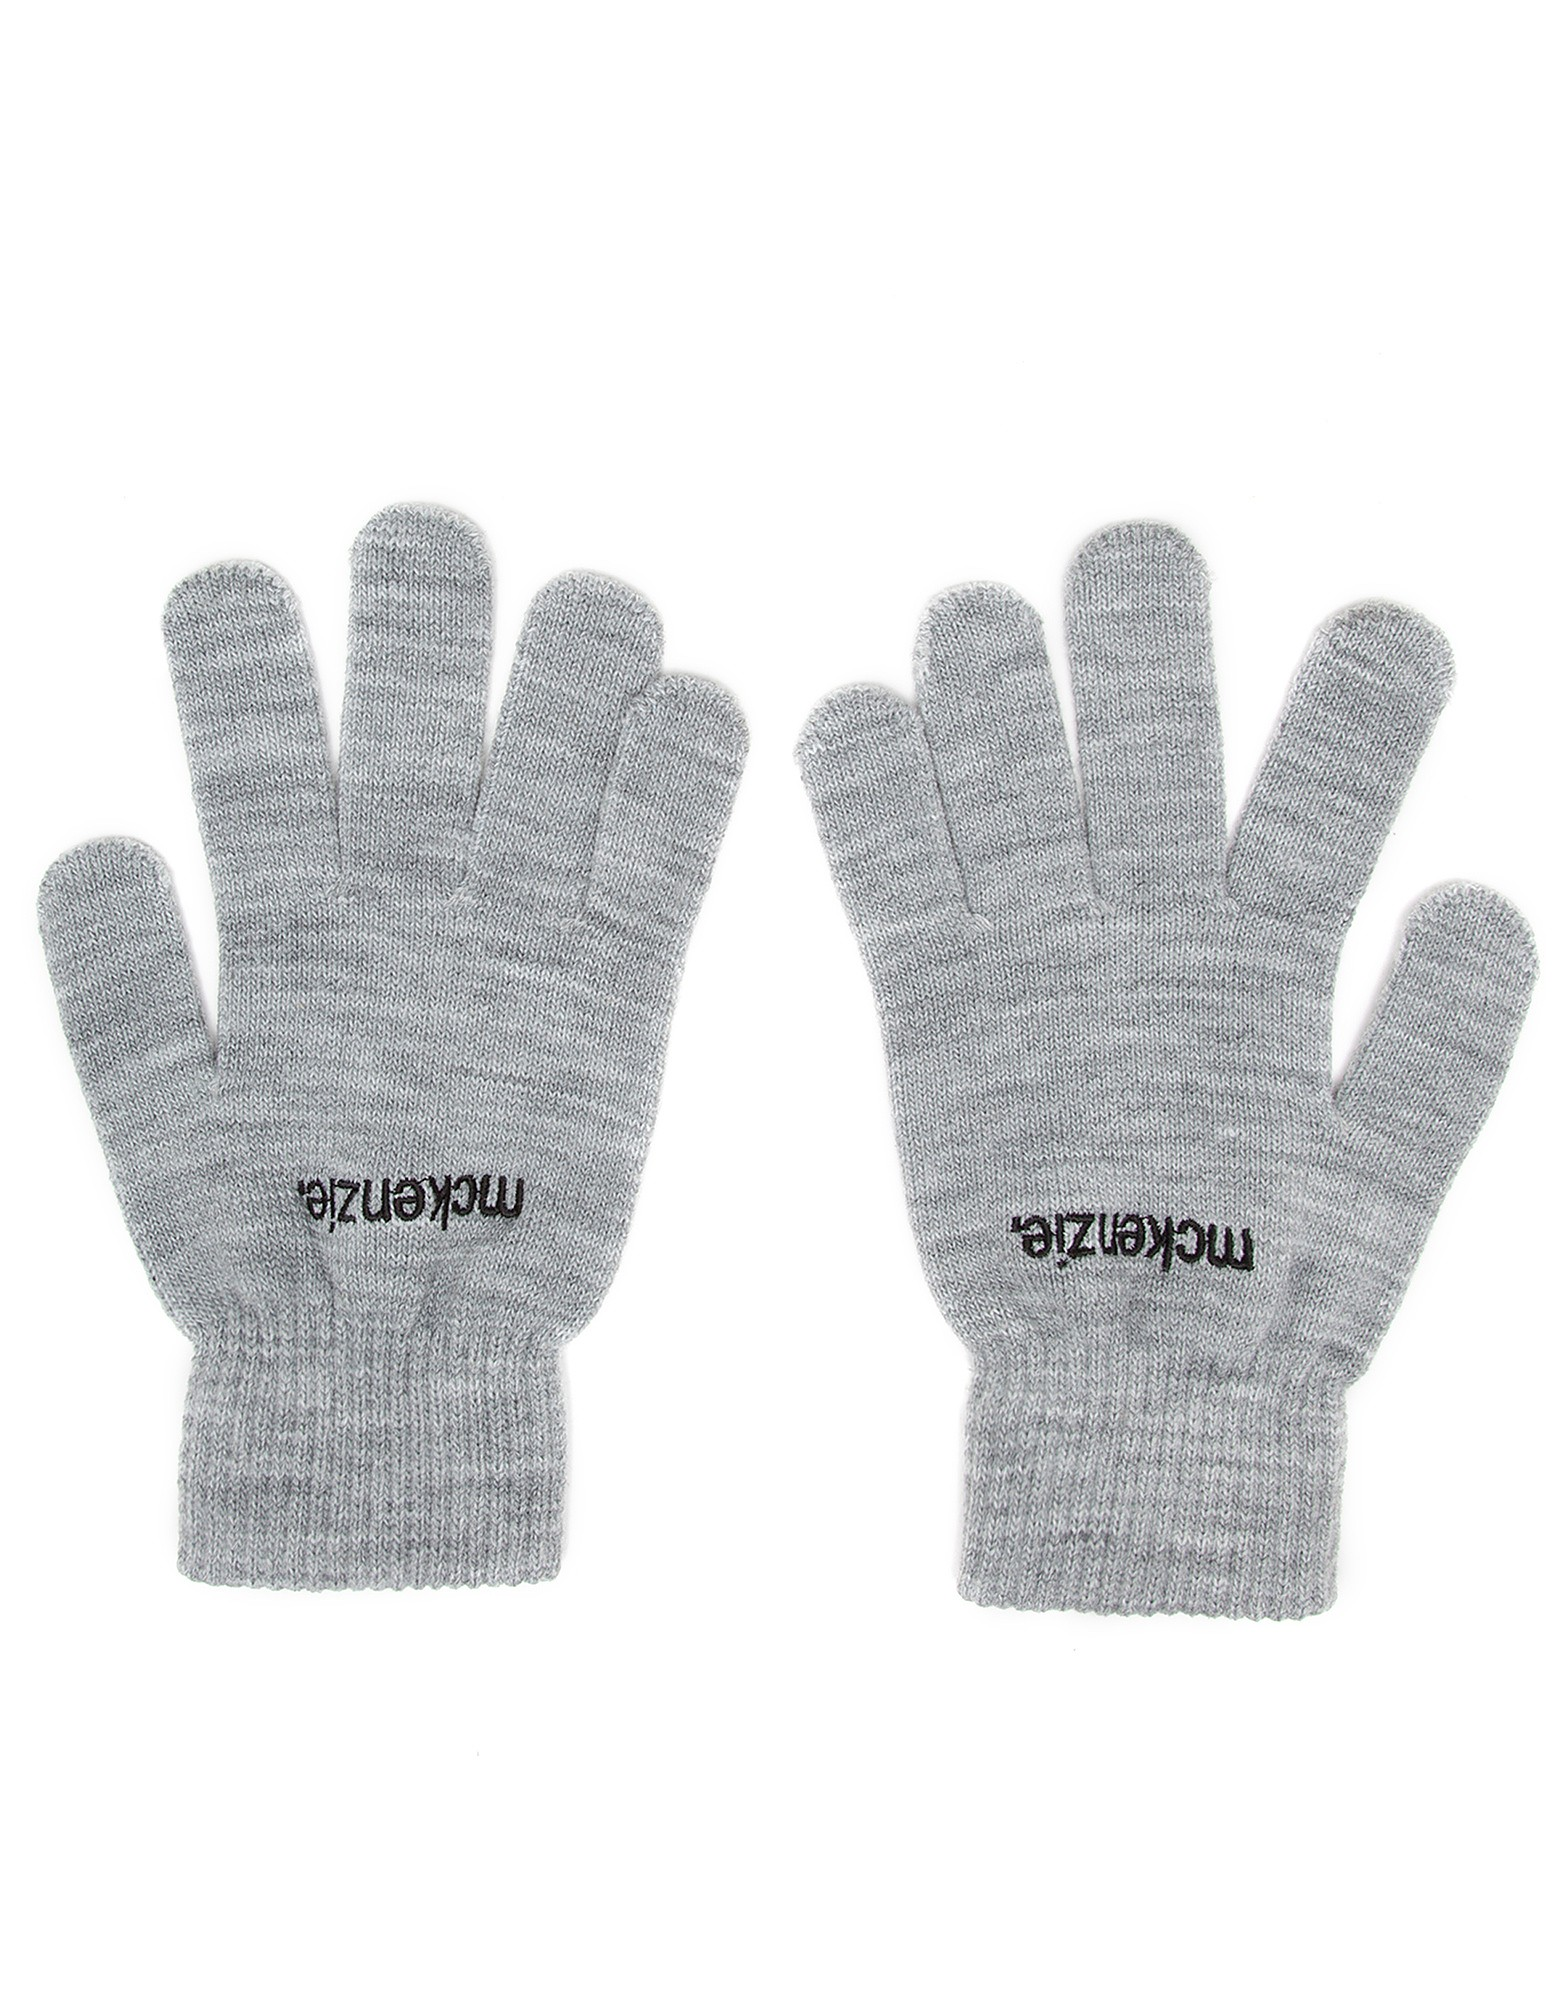 Leather gloves mens jd - Image Of Mens Mckenzie Alonzo Gloves Only At Jd Grey Marl Grey Marl